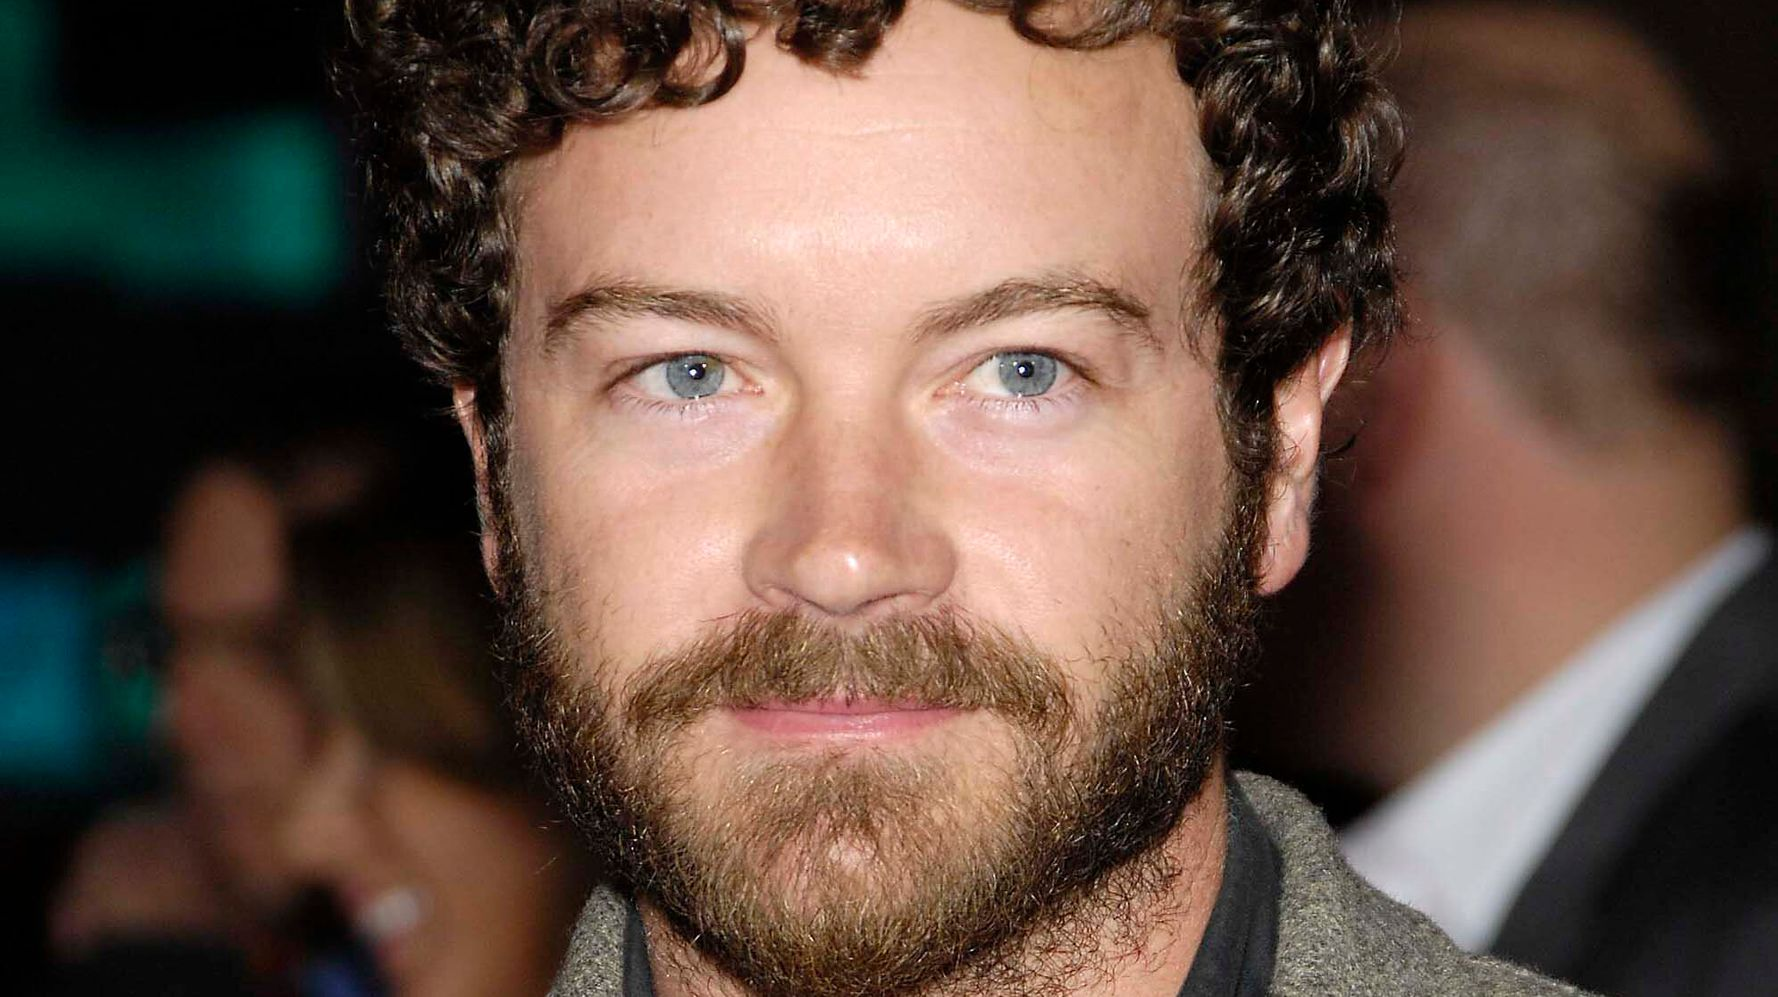 Westlake Legal Group 5d5478902400009a01b7fba1 4 Women Sue Church of Scientology, Its Controversial Leader And Danny Masterson